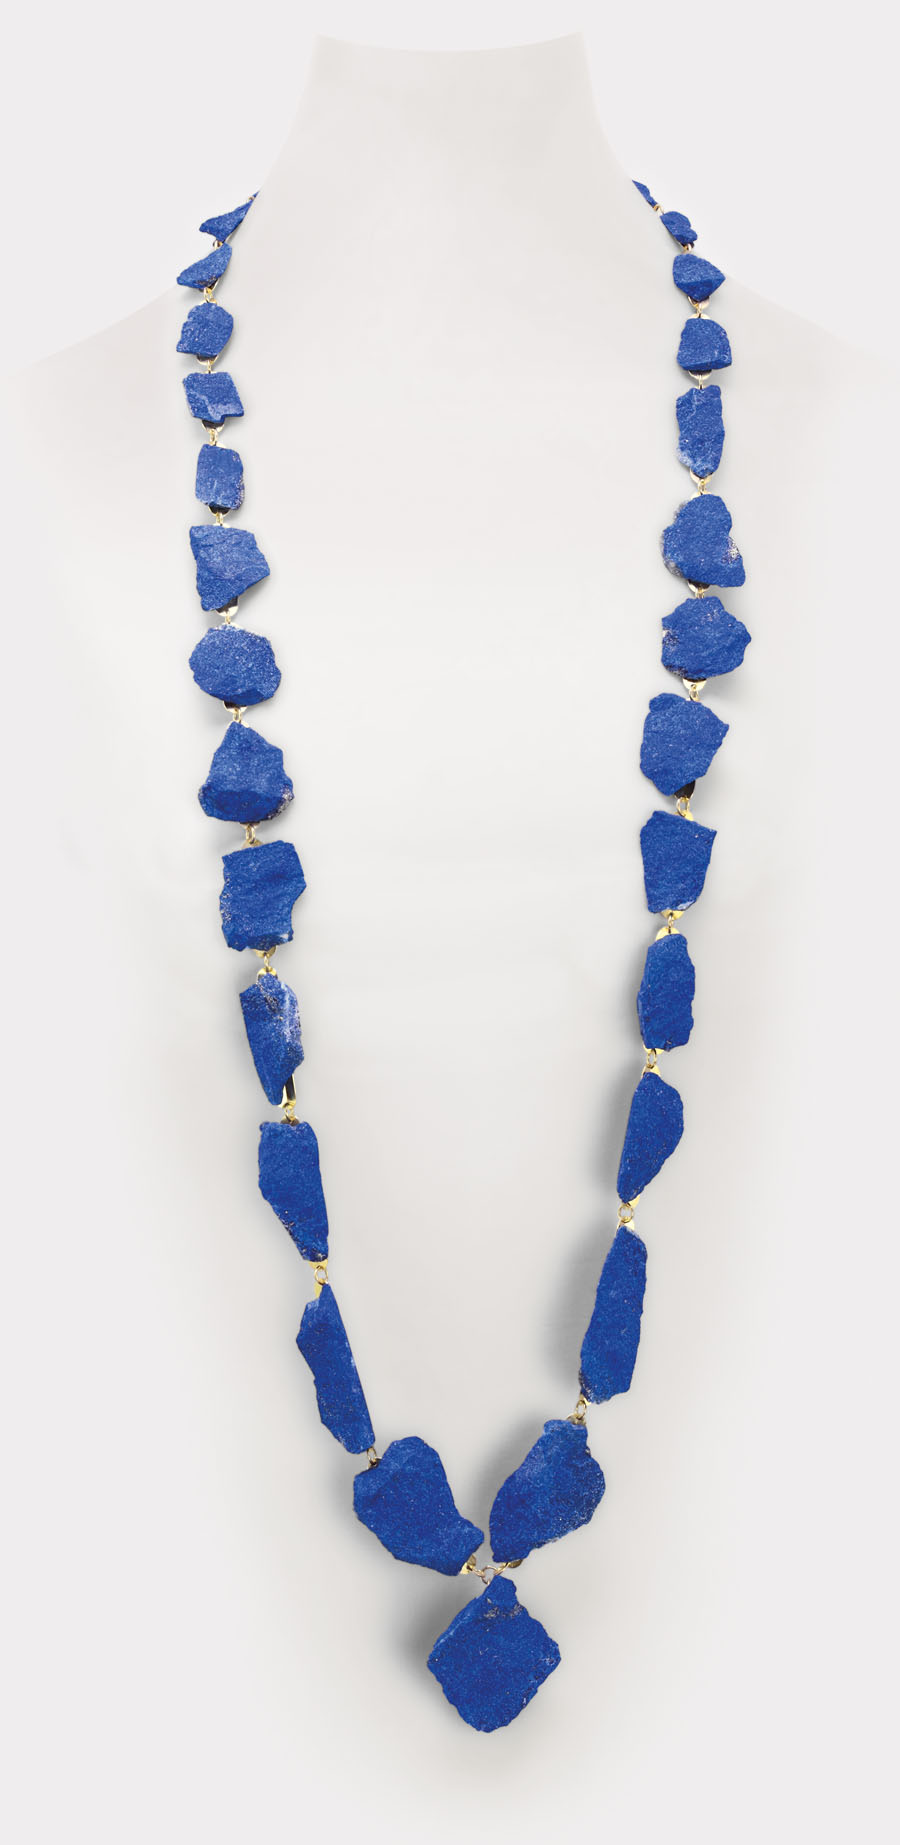 necklace  2013  gold 750  lapislazuli  1100x10-30  mm